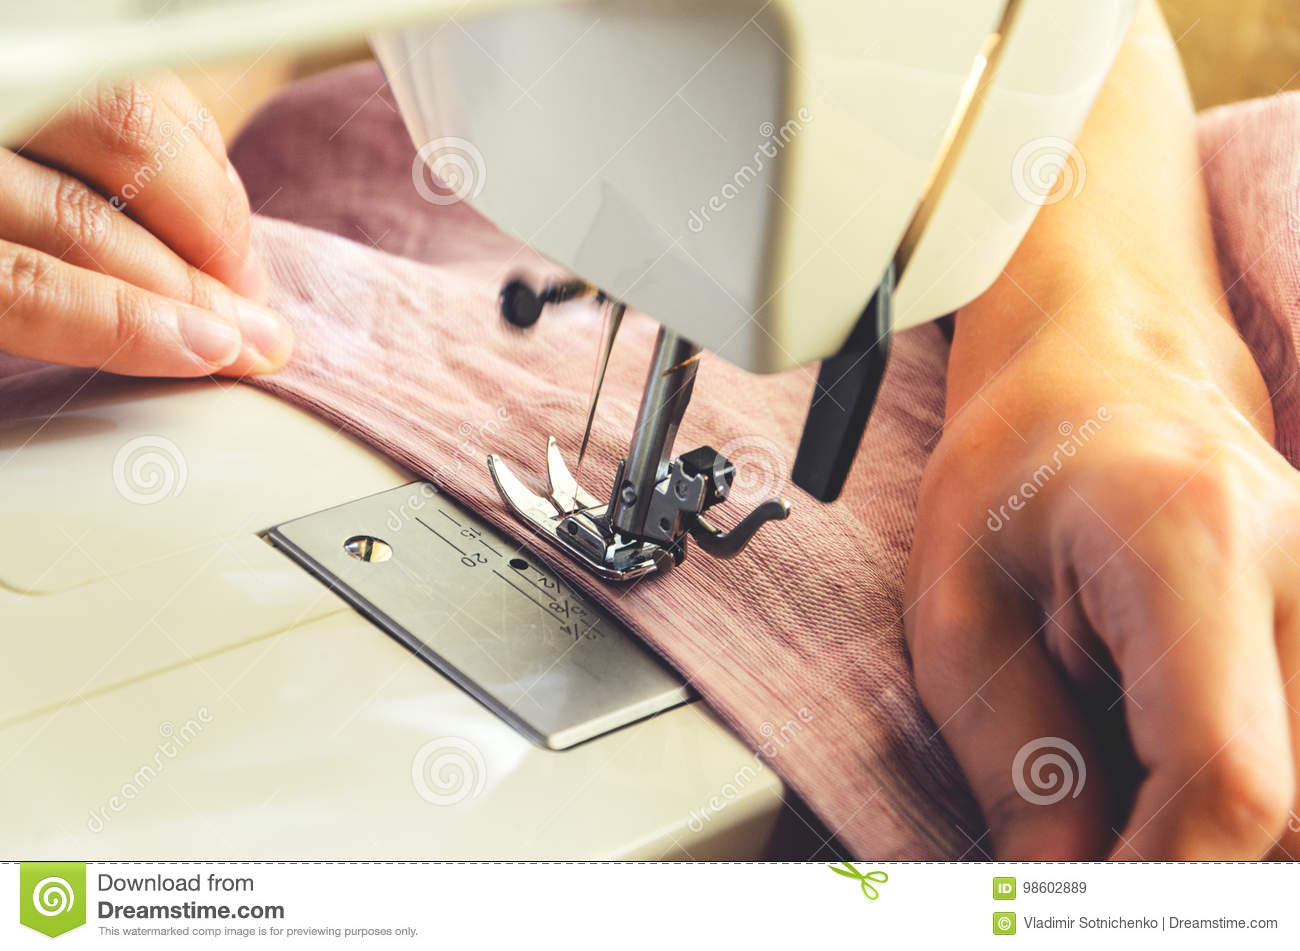 Sewing process on the sewing machine